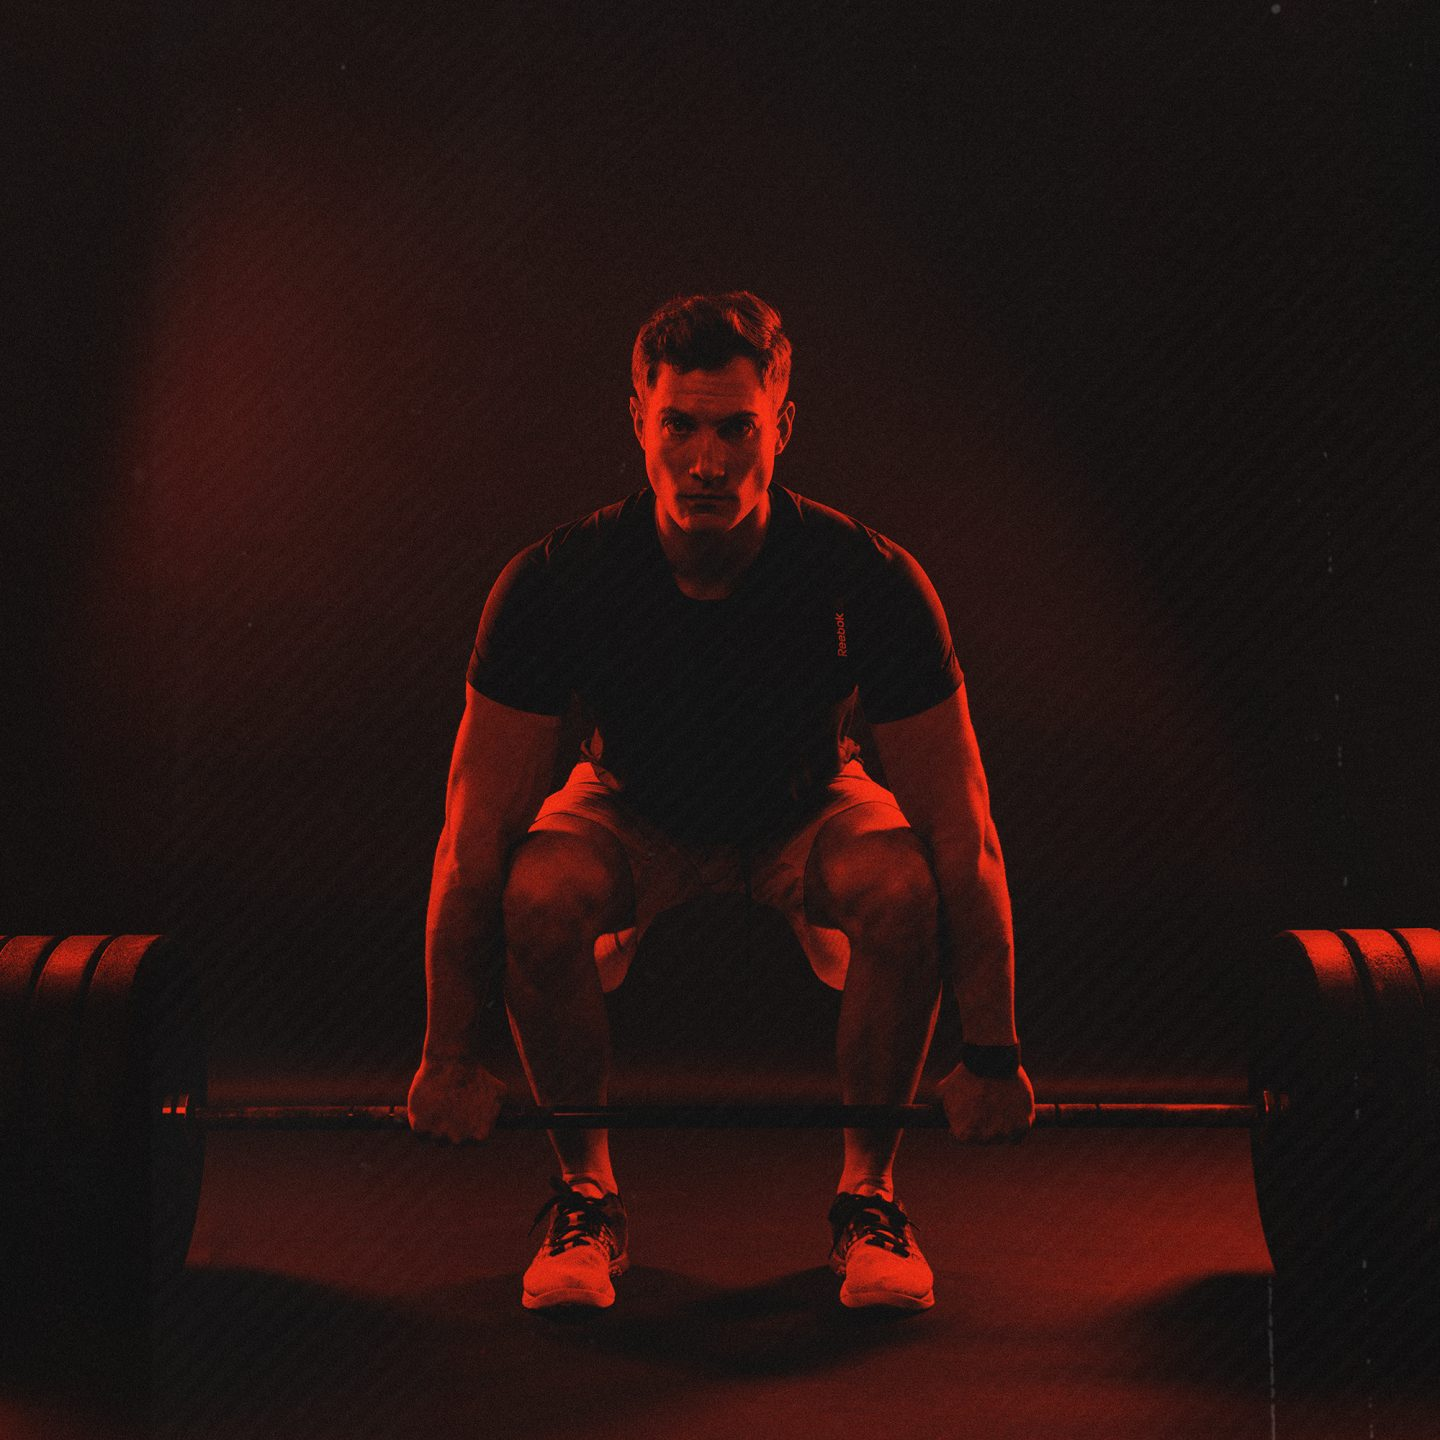 crossfitter focused weightlifting starting position red filter